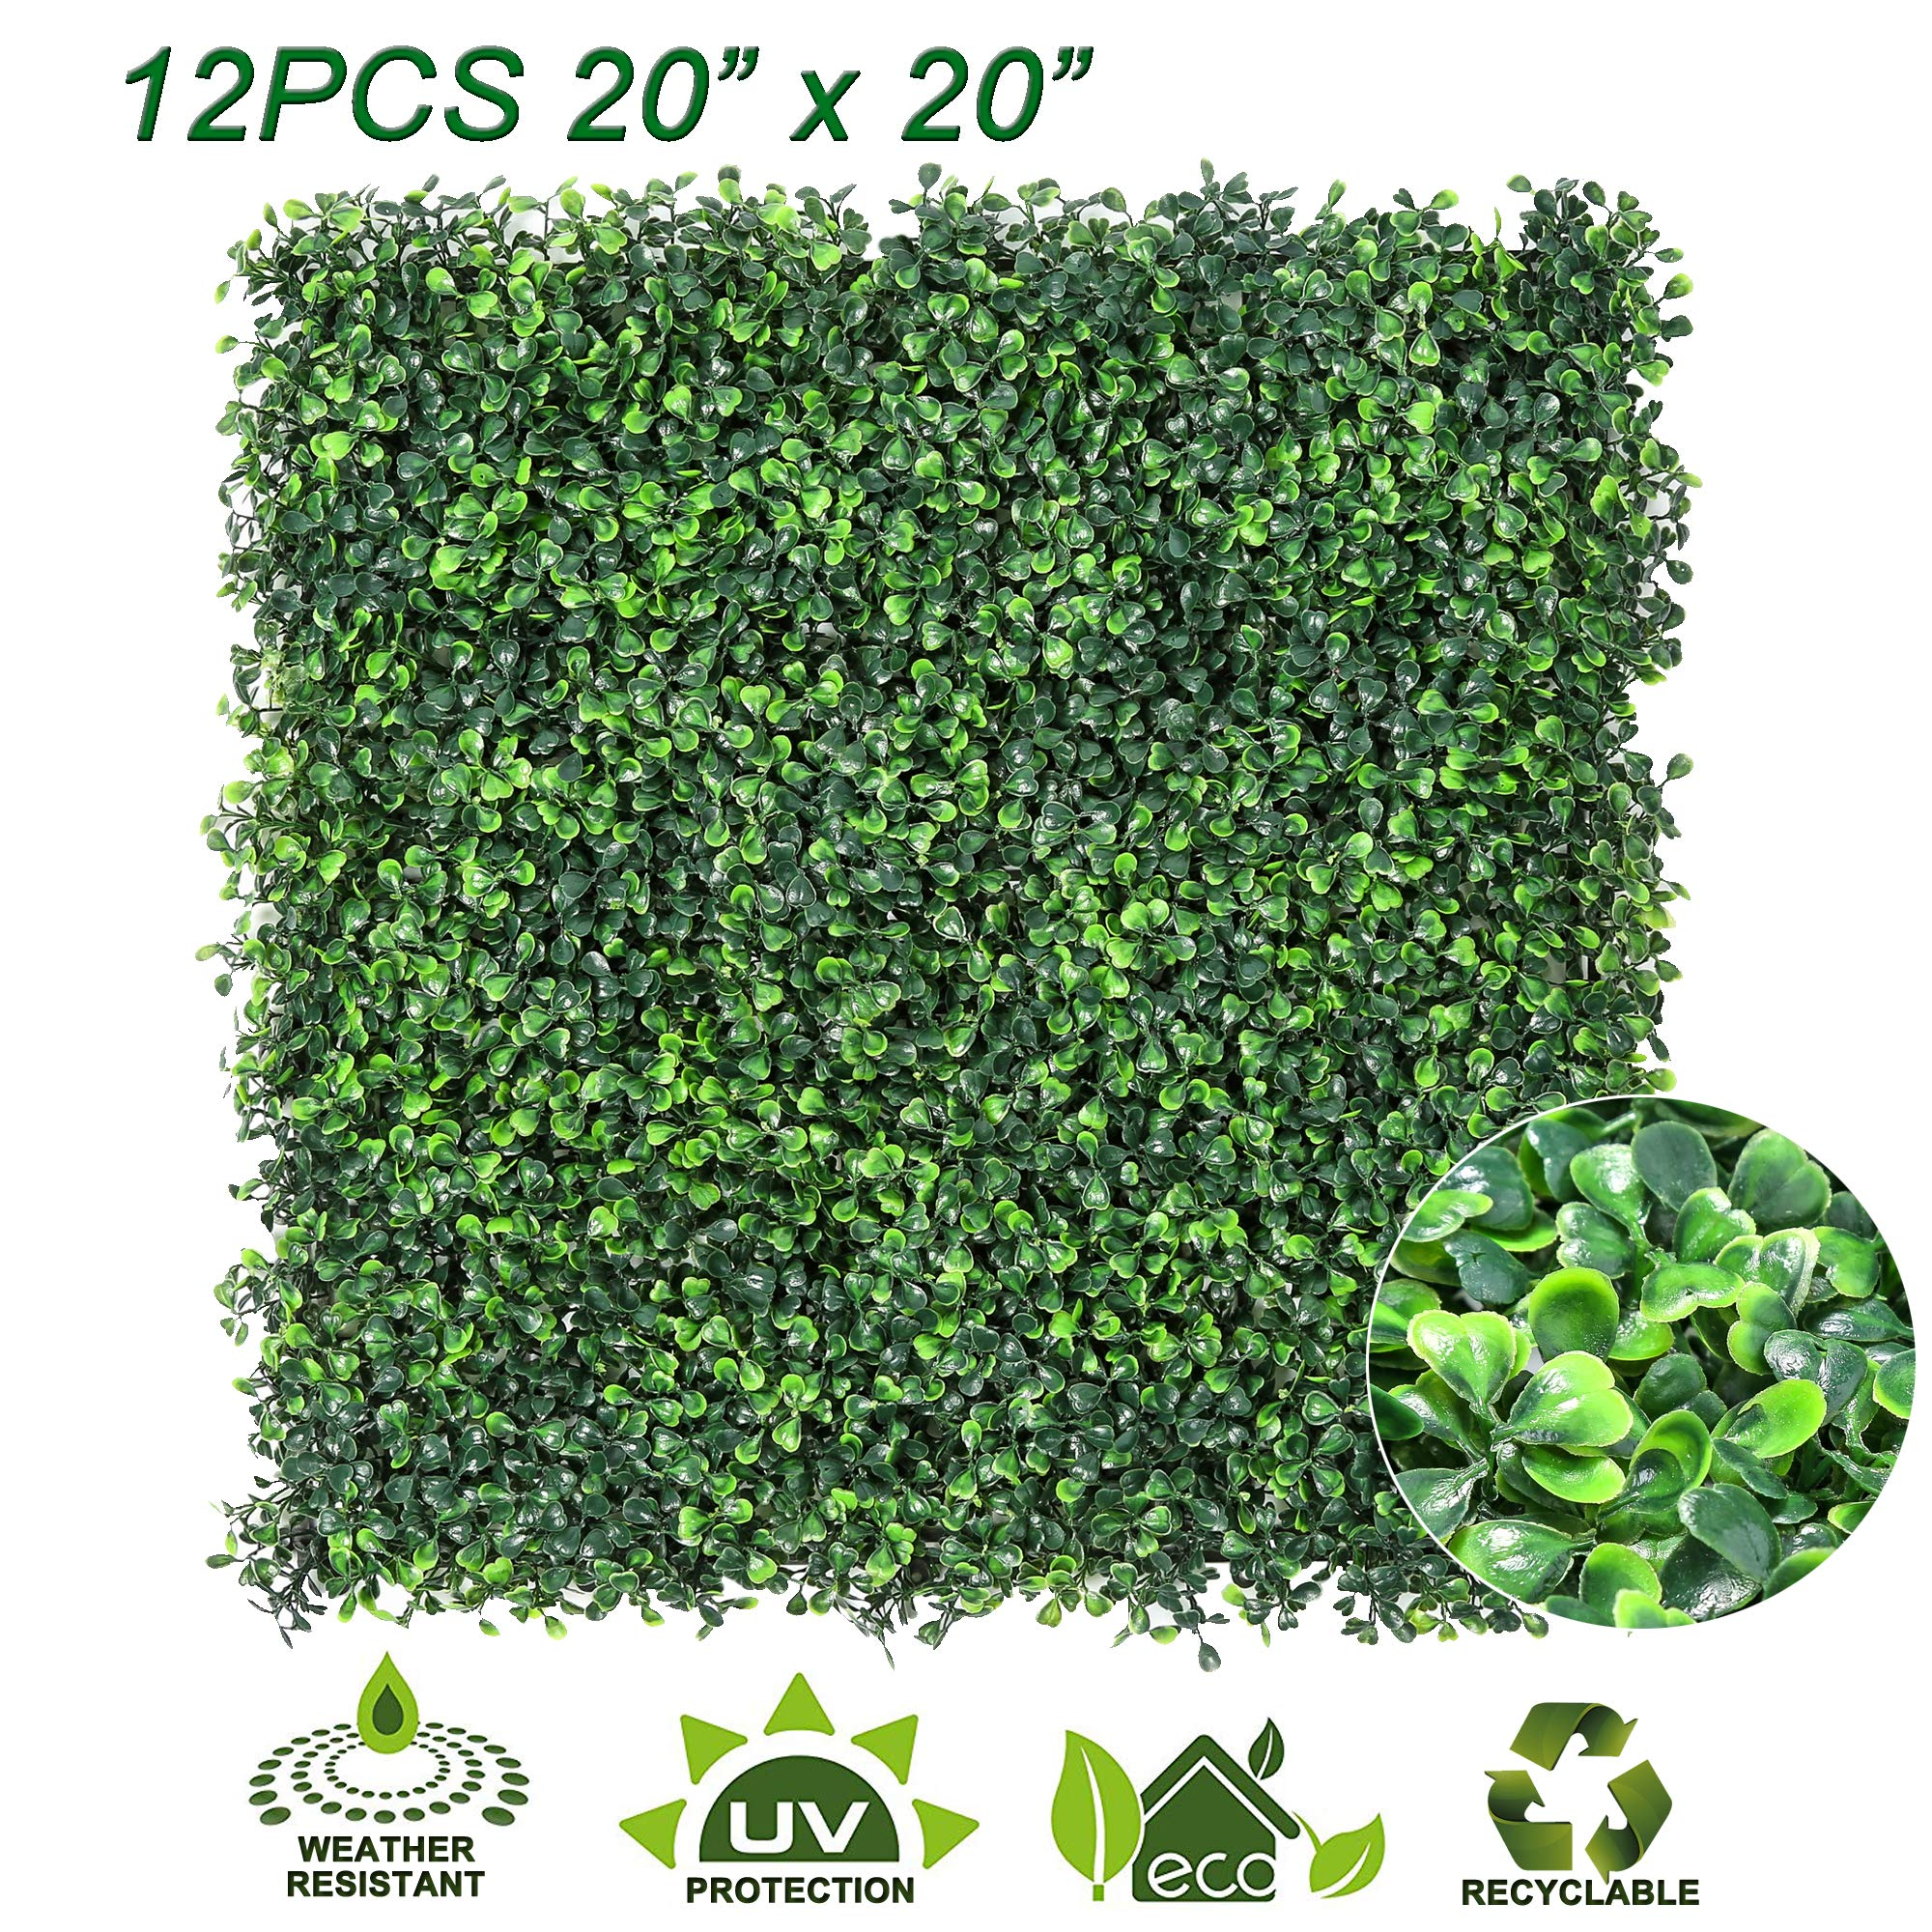 Sunnyglade 12PCS 20''x20'' Artificial Boxwood Panels Topiary Hedge Plant, Privacy Hedge Screen, UV Protected Faux Greenery Mats Suitable for Outdoor, Indoor, Garden, Fence, Backyard and Décor (12PCS)